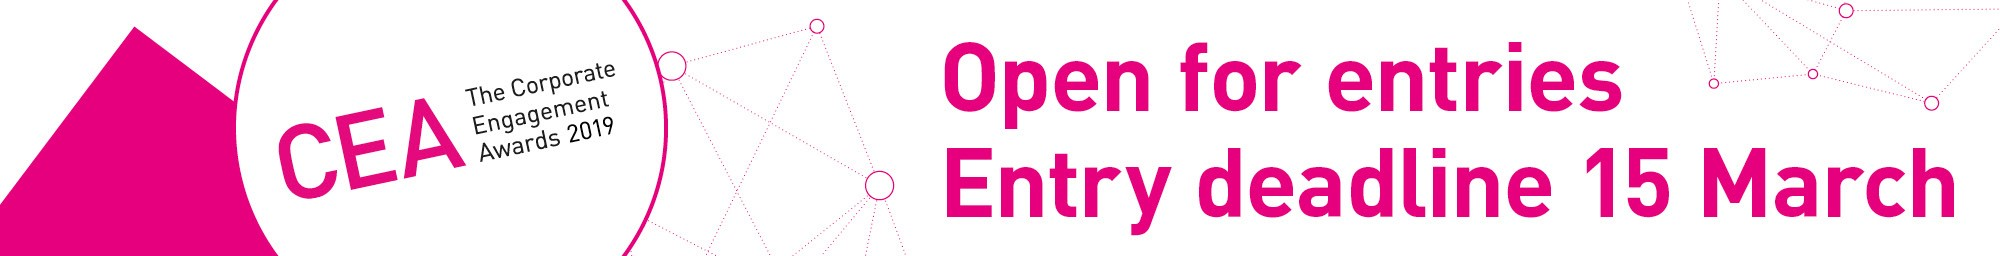 Corporate Engagement Awards - Open for entries